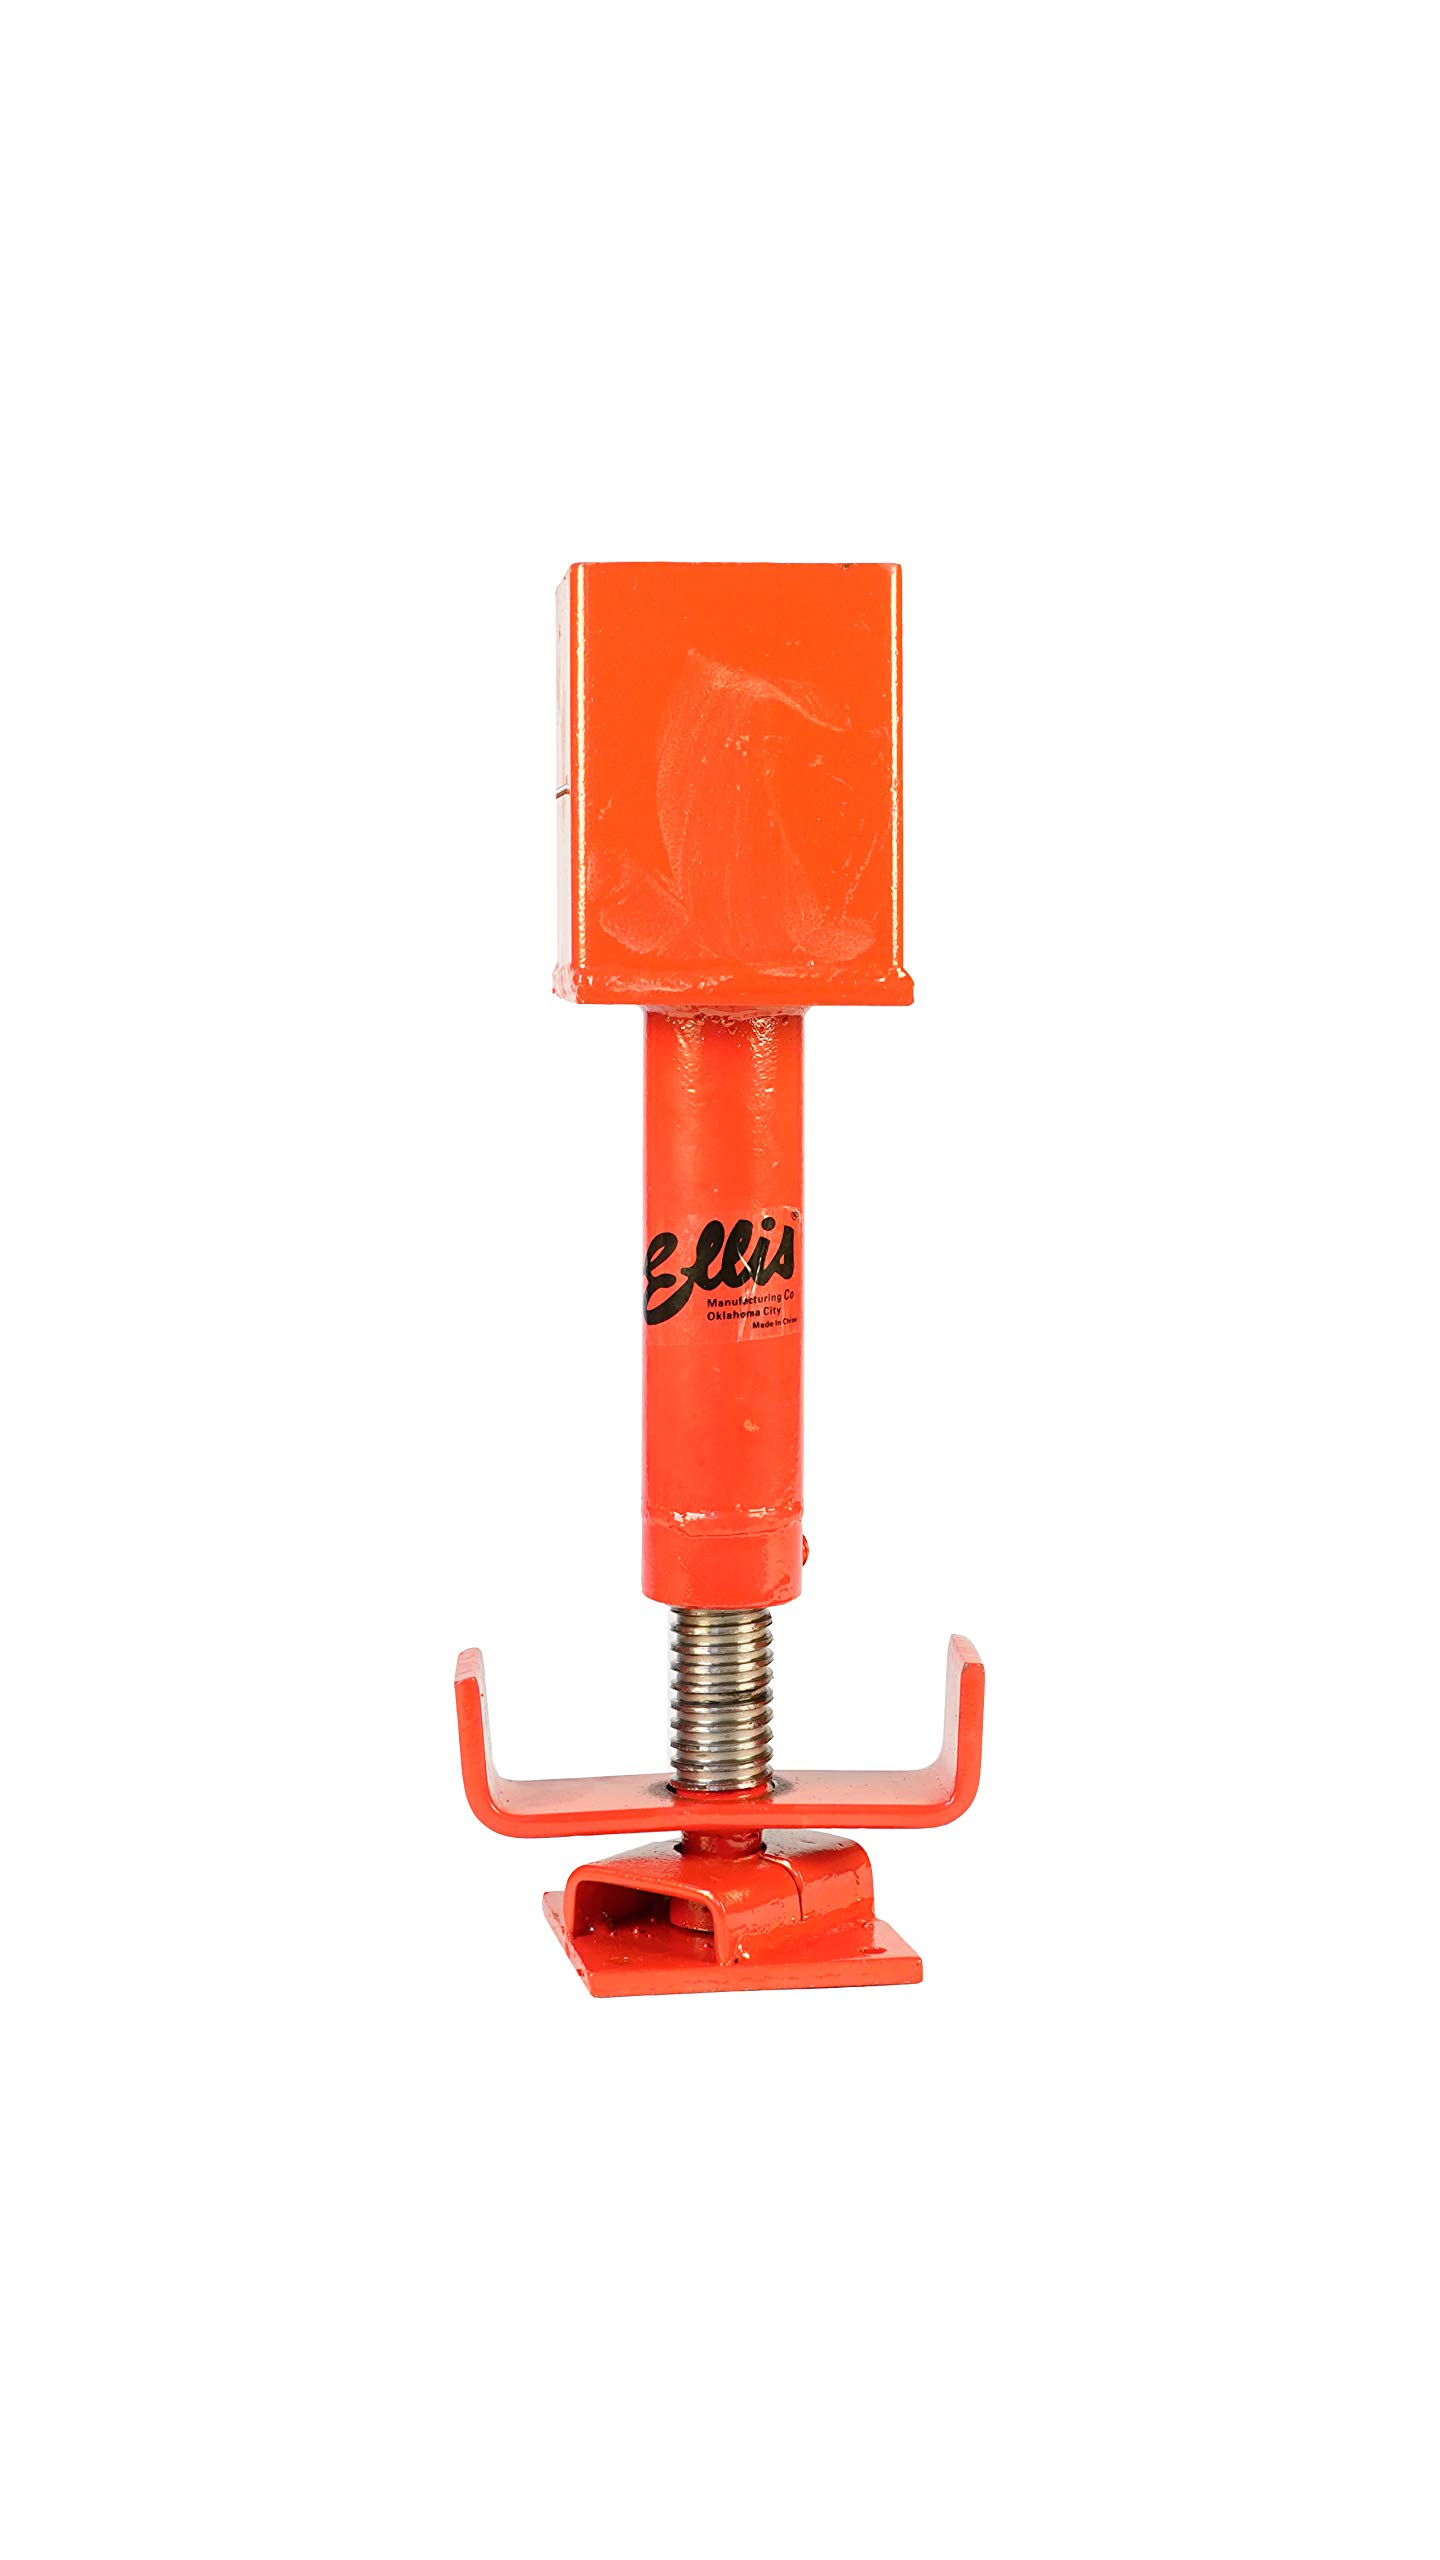 Ellis Manufacturing Company 4x4 Screw Jack - Adjustable Support - Safe Load Capacity (15,000 lbs) - Painted Finish by ELLIS